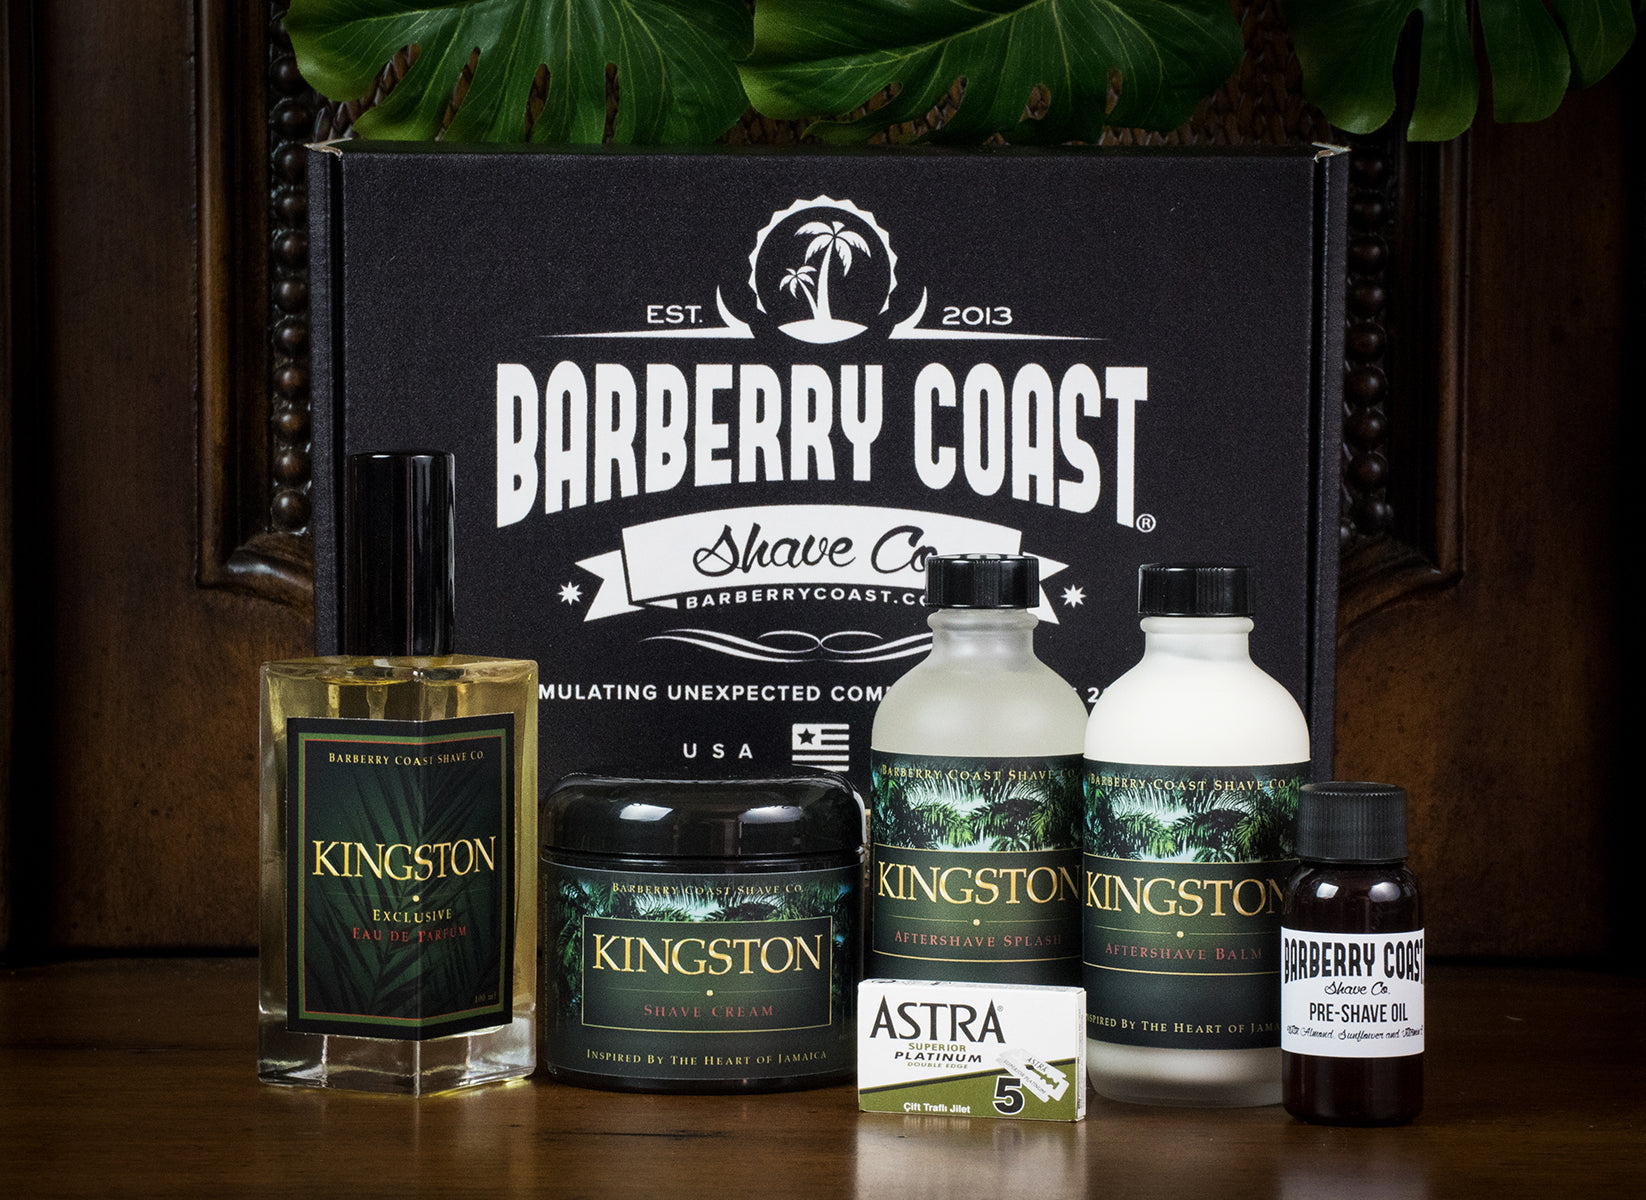 Kingston Shaving & Cologne Gift Set - FREE Same Day Shipping